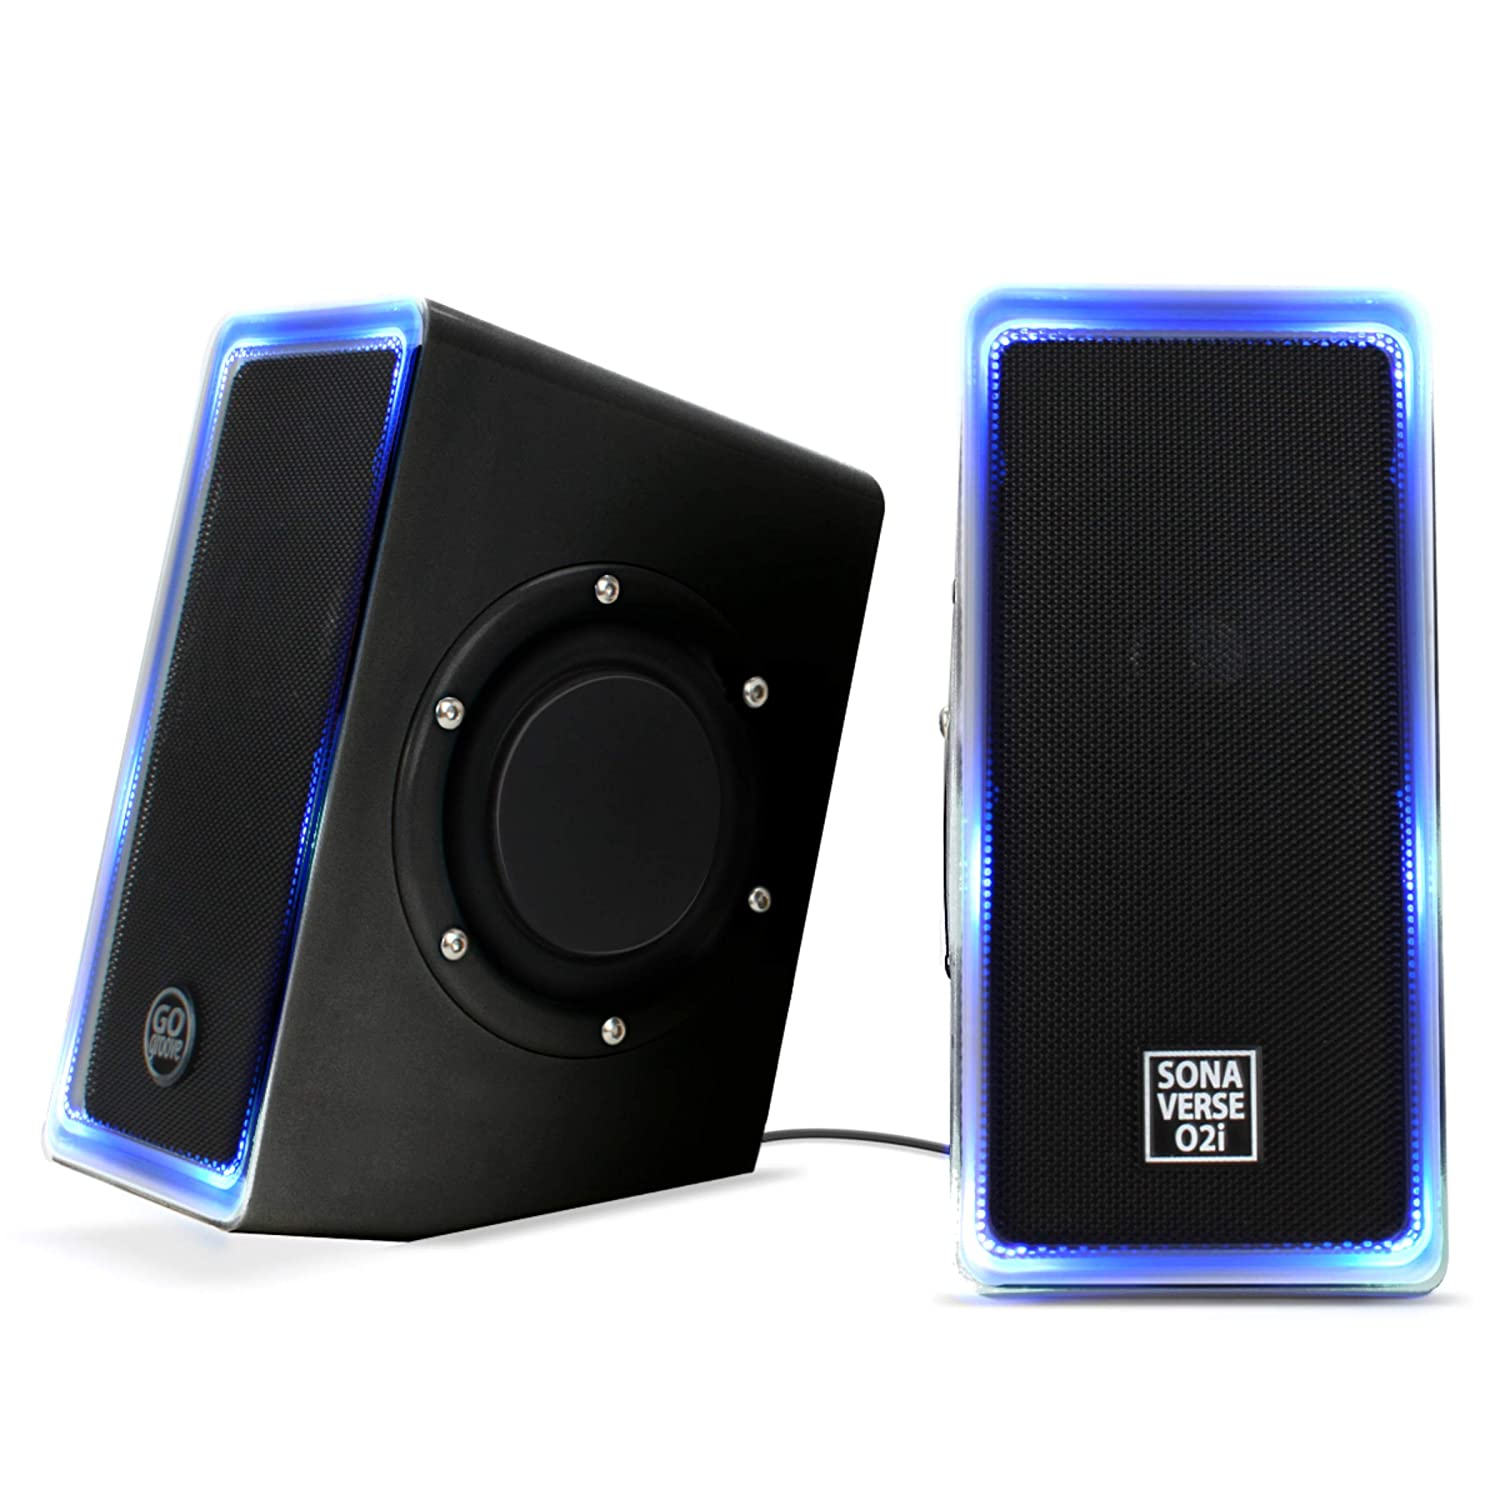 GOgroove Desktop Speakers for Laptop Computer – SonaVERSE O2i Gaming Computer Speakers USB Powered with AUX Input, Blue LED Lights, Dual 2.5 Passive Bass Woofers, 14W Peak Power Black with LEDs